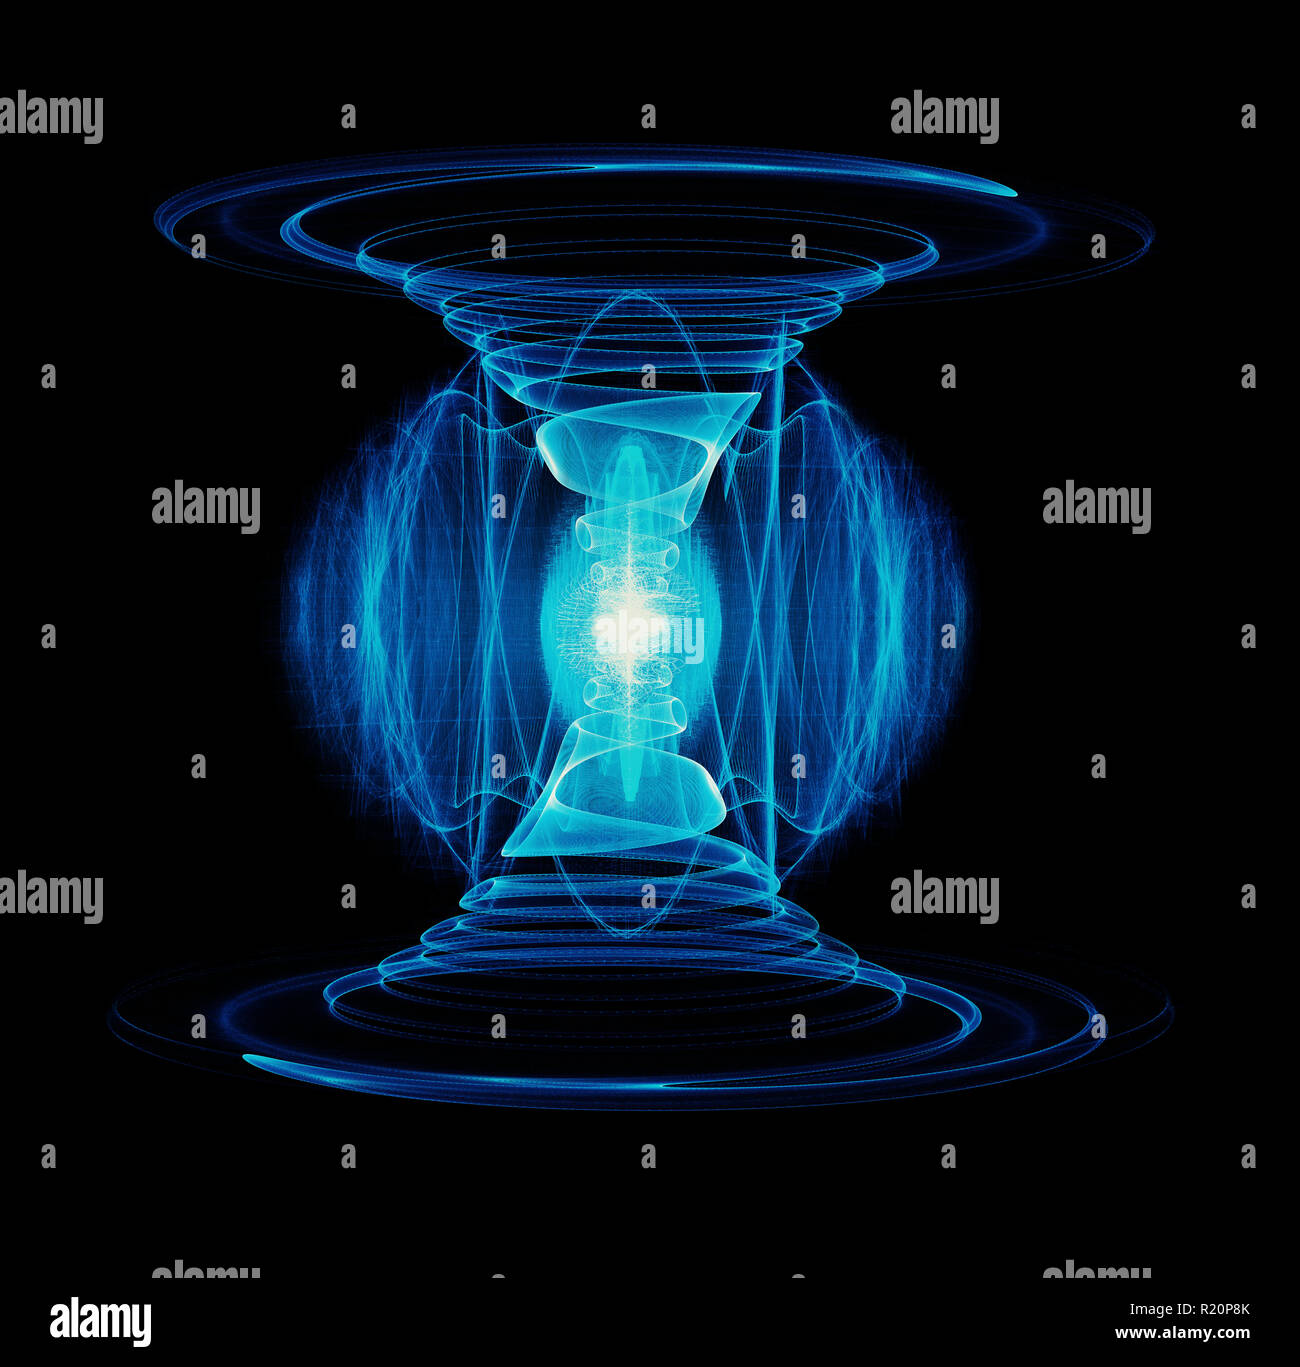 Tesla Coil Stock Photos Images Alamy Free Electricity Plasma Flow Through A Double Spiral Wire Producing High Energy Particle Discharge And